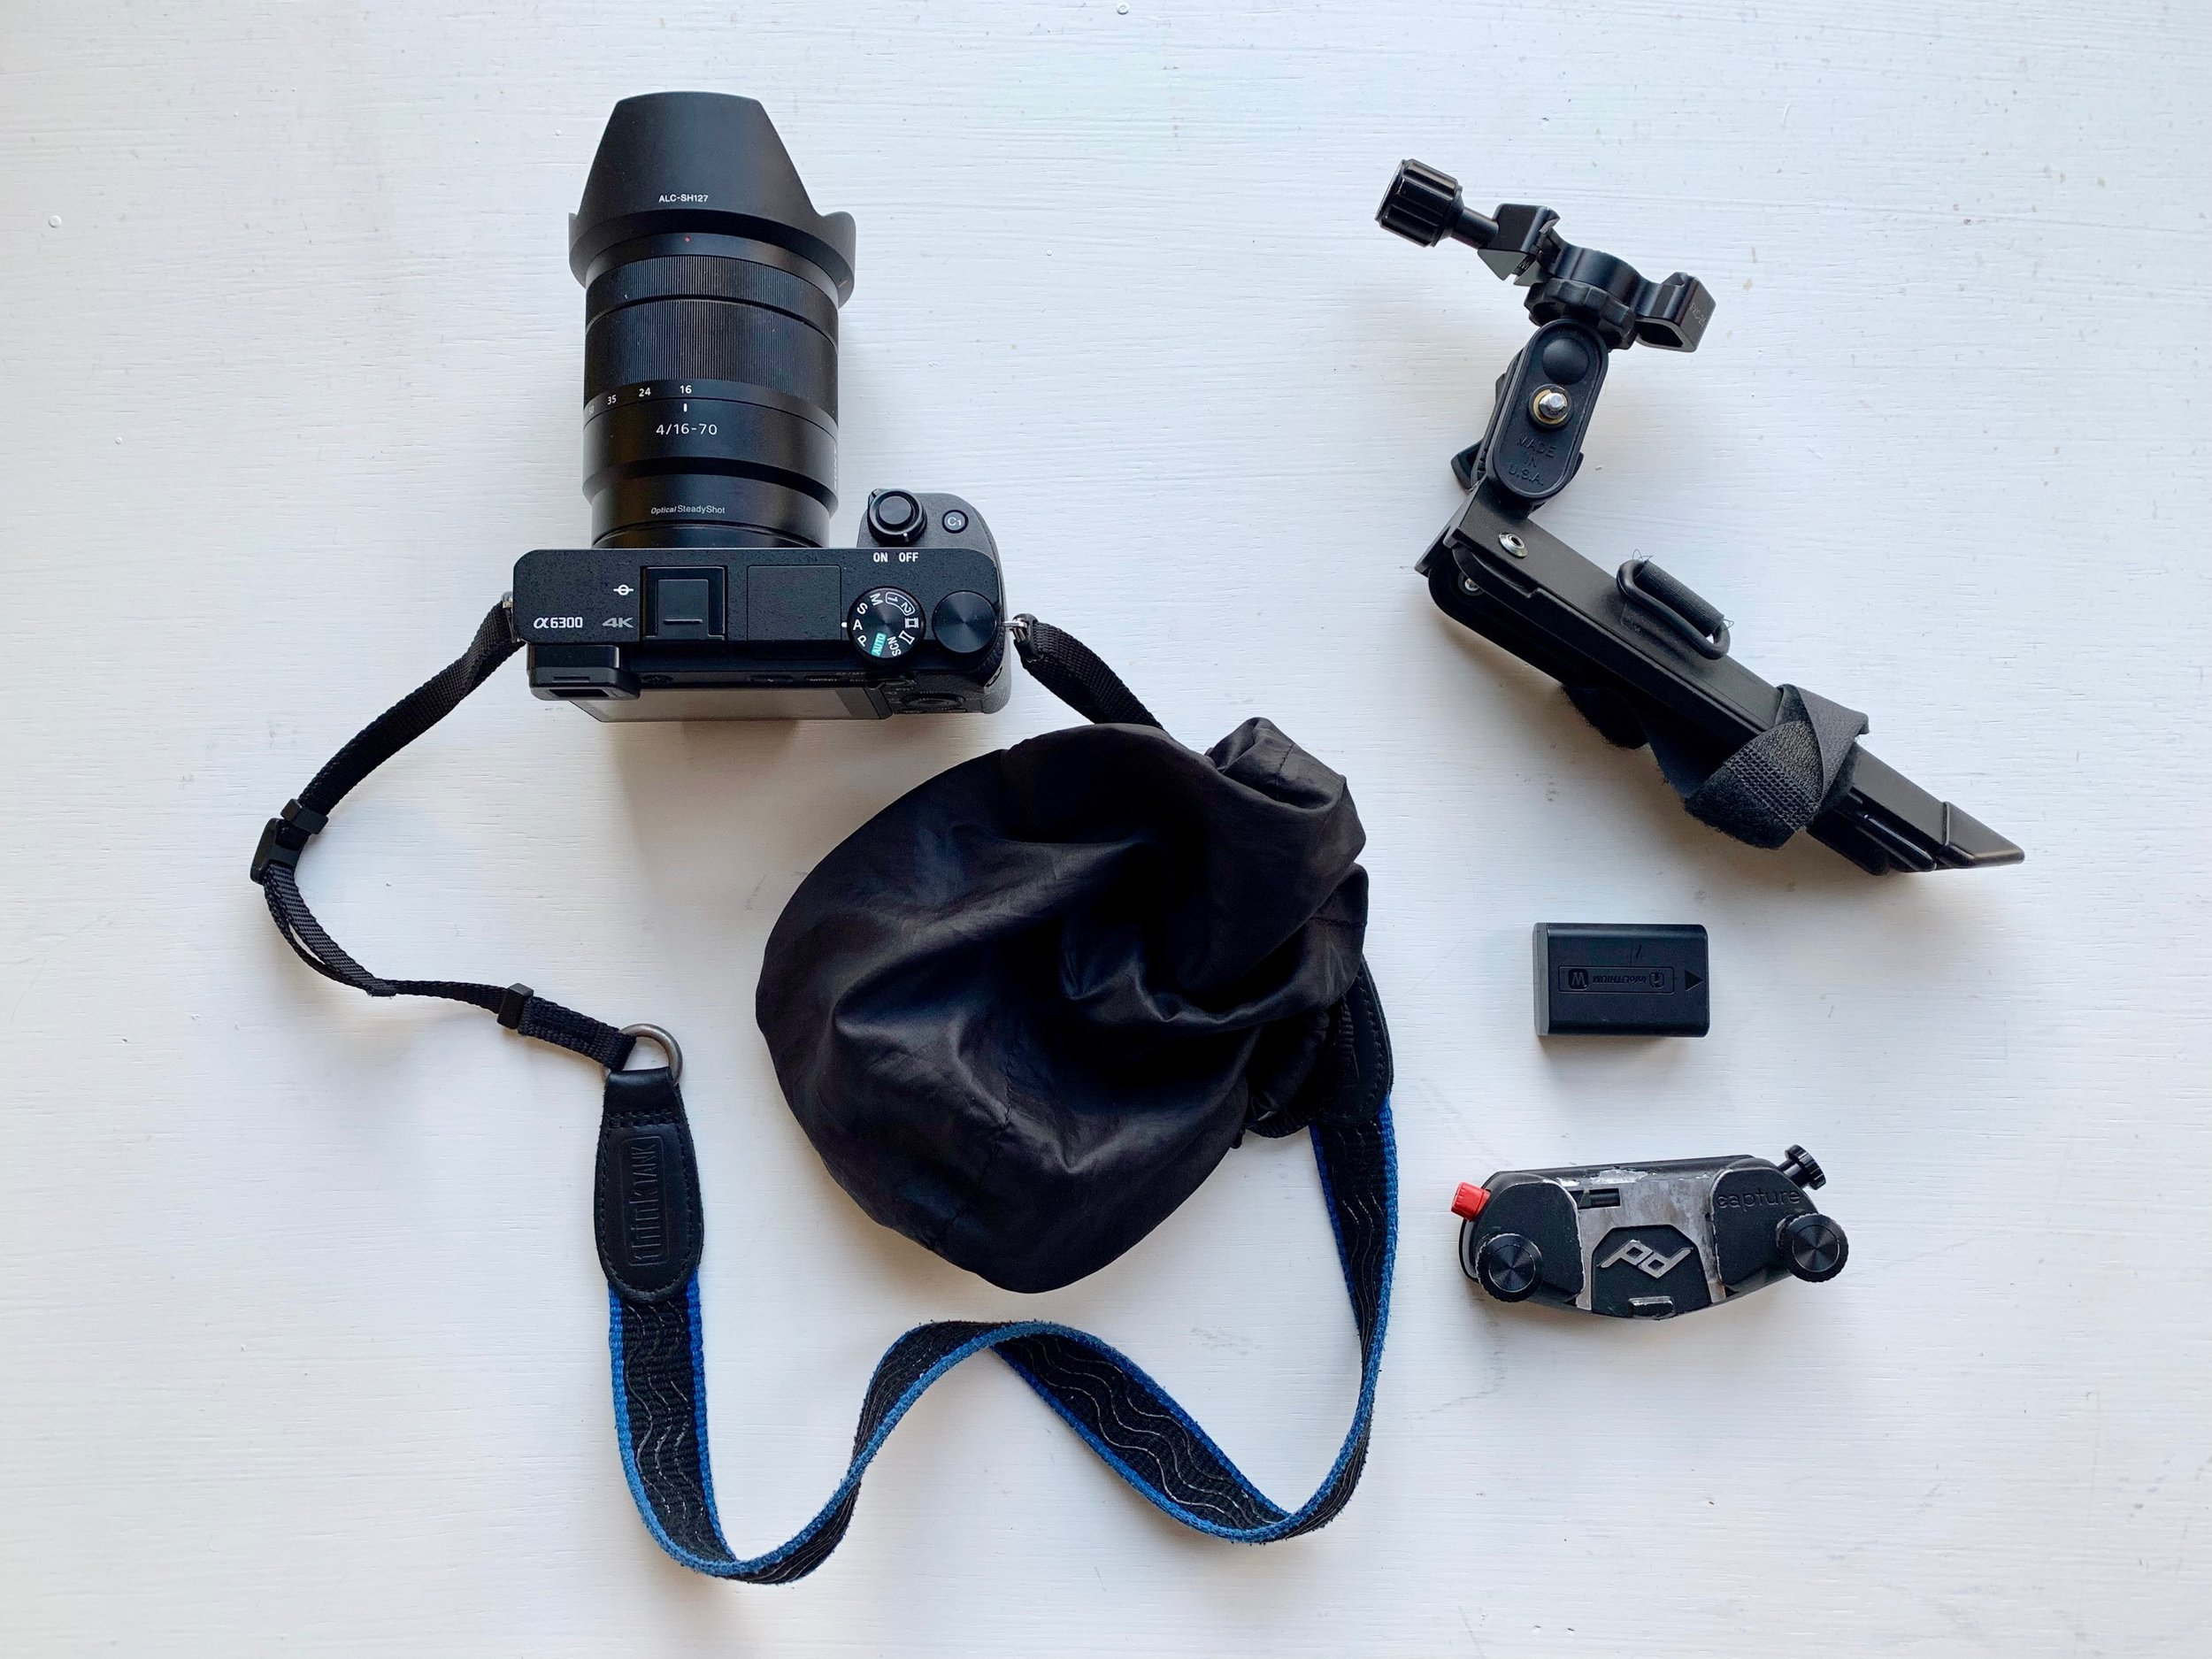 Sony A6300 with Thinktank strap, camera cover, Pedco Ultrapod II tripod, spare battery, and Capture Camera Clip to store the camera near my shoulder